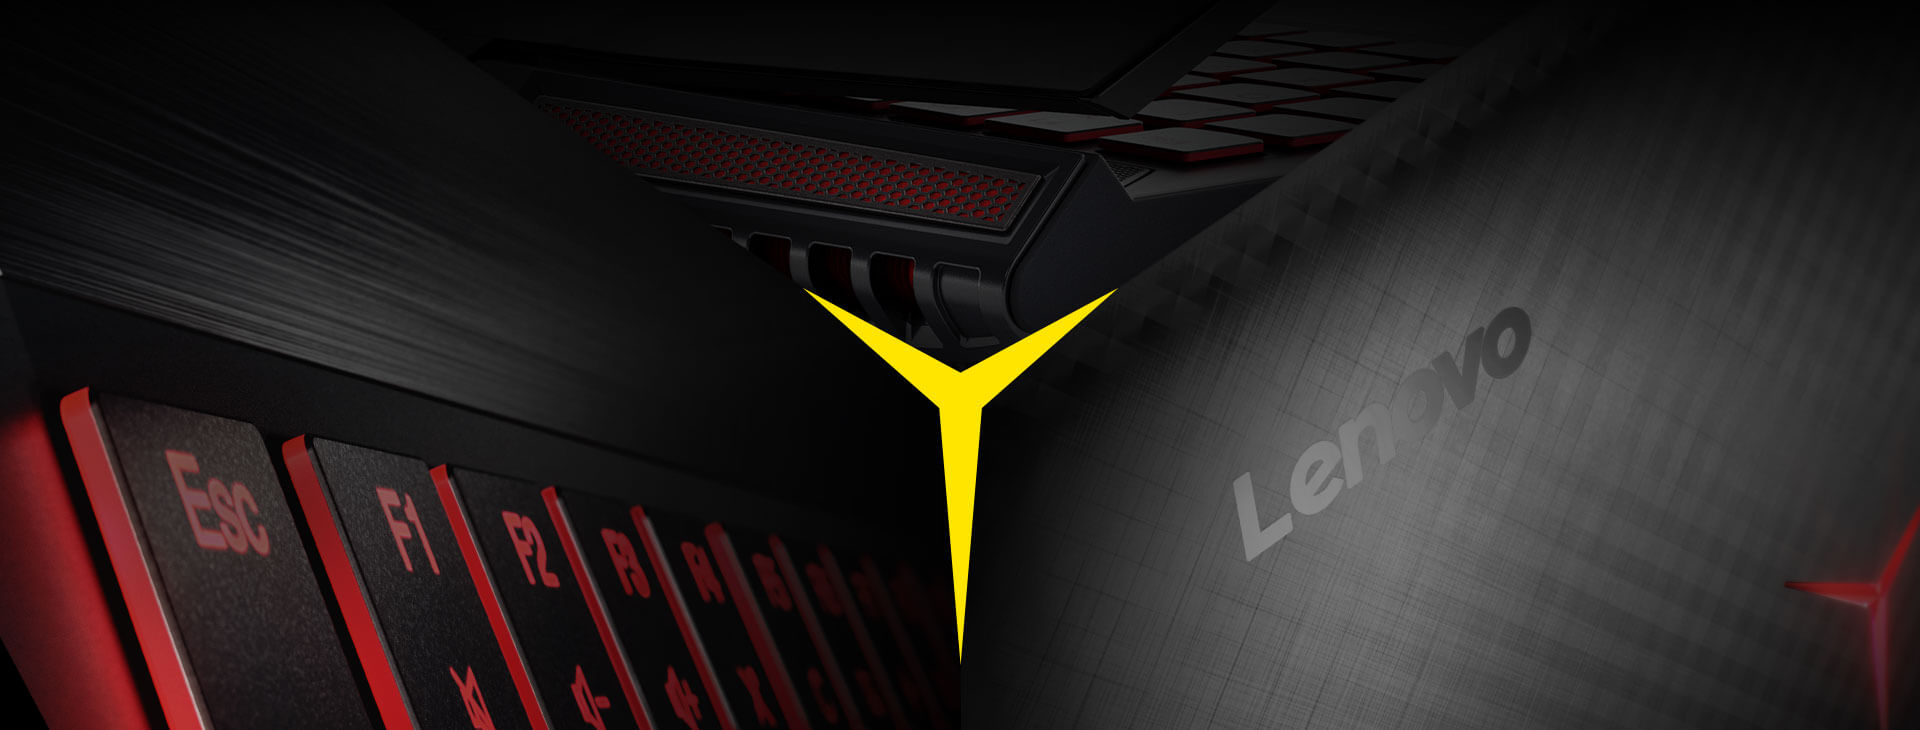 Lenovo Legion Notebooks